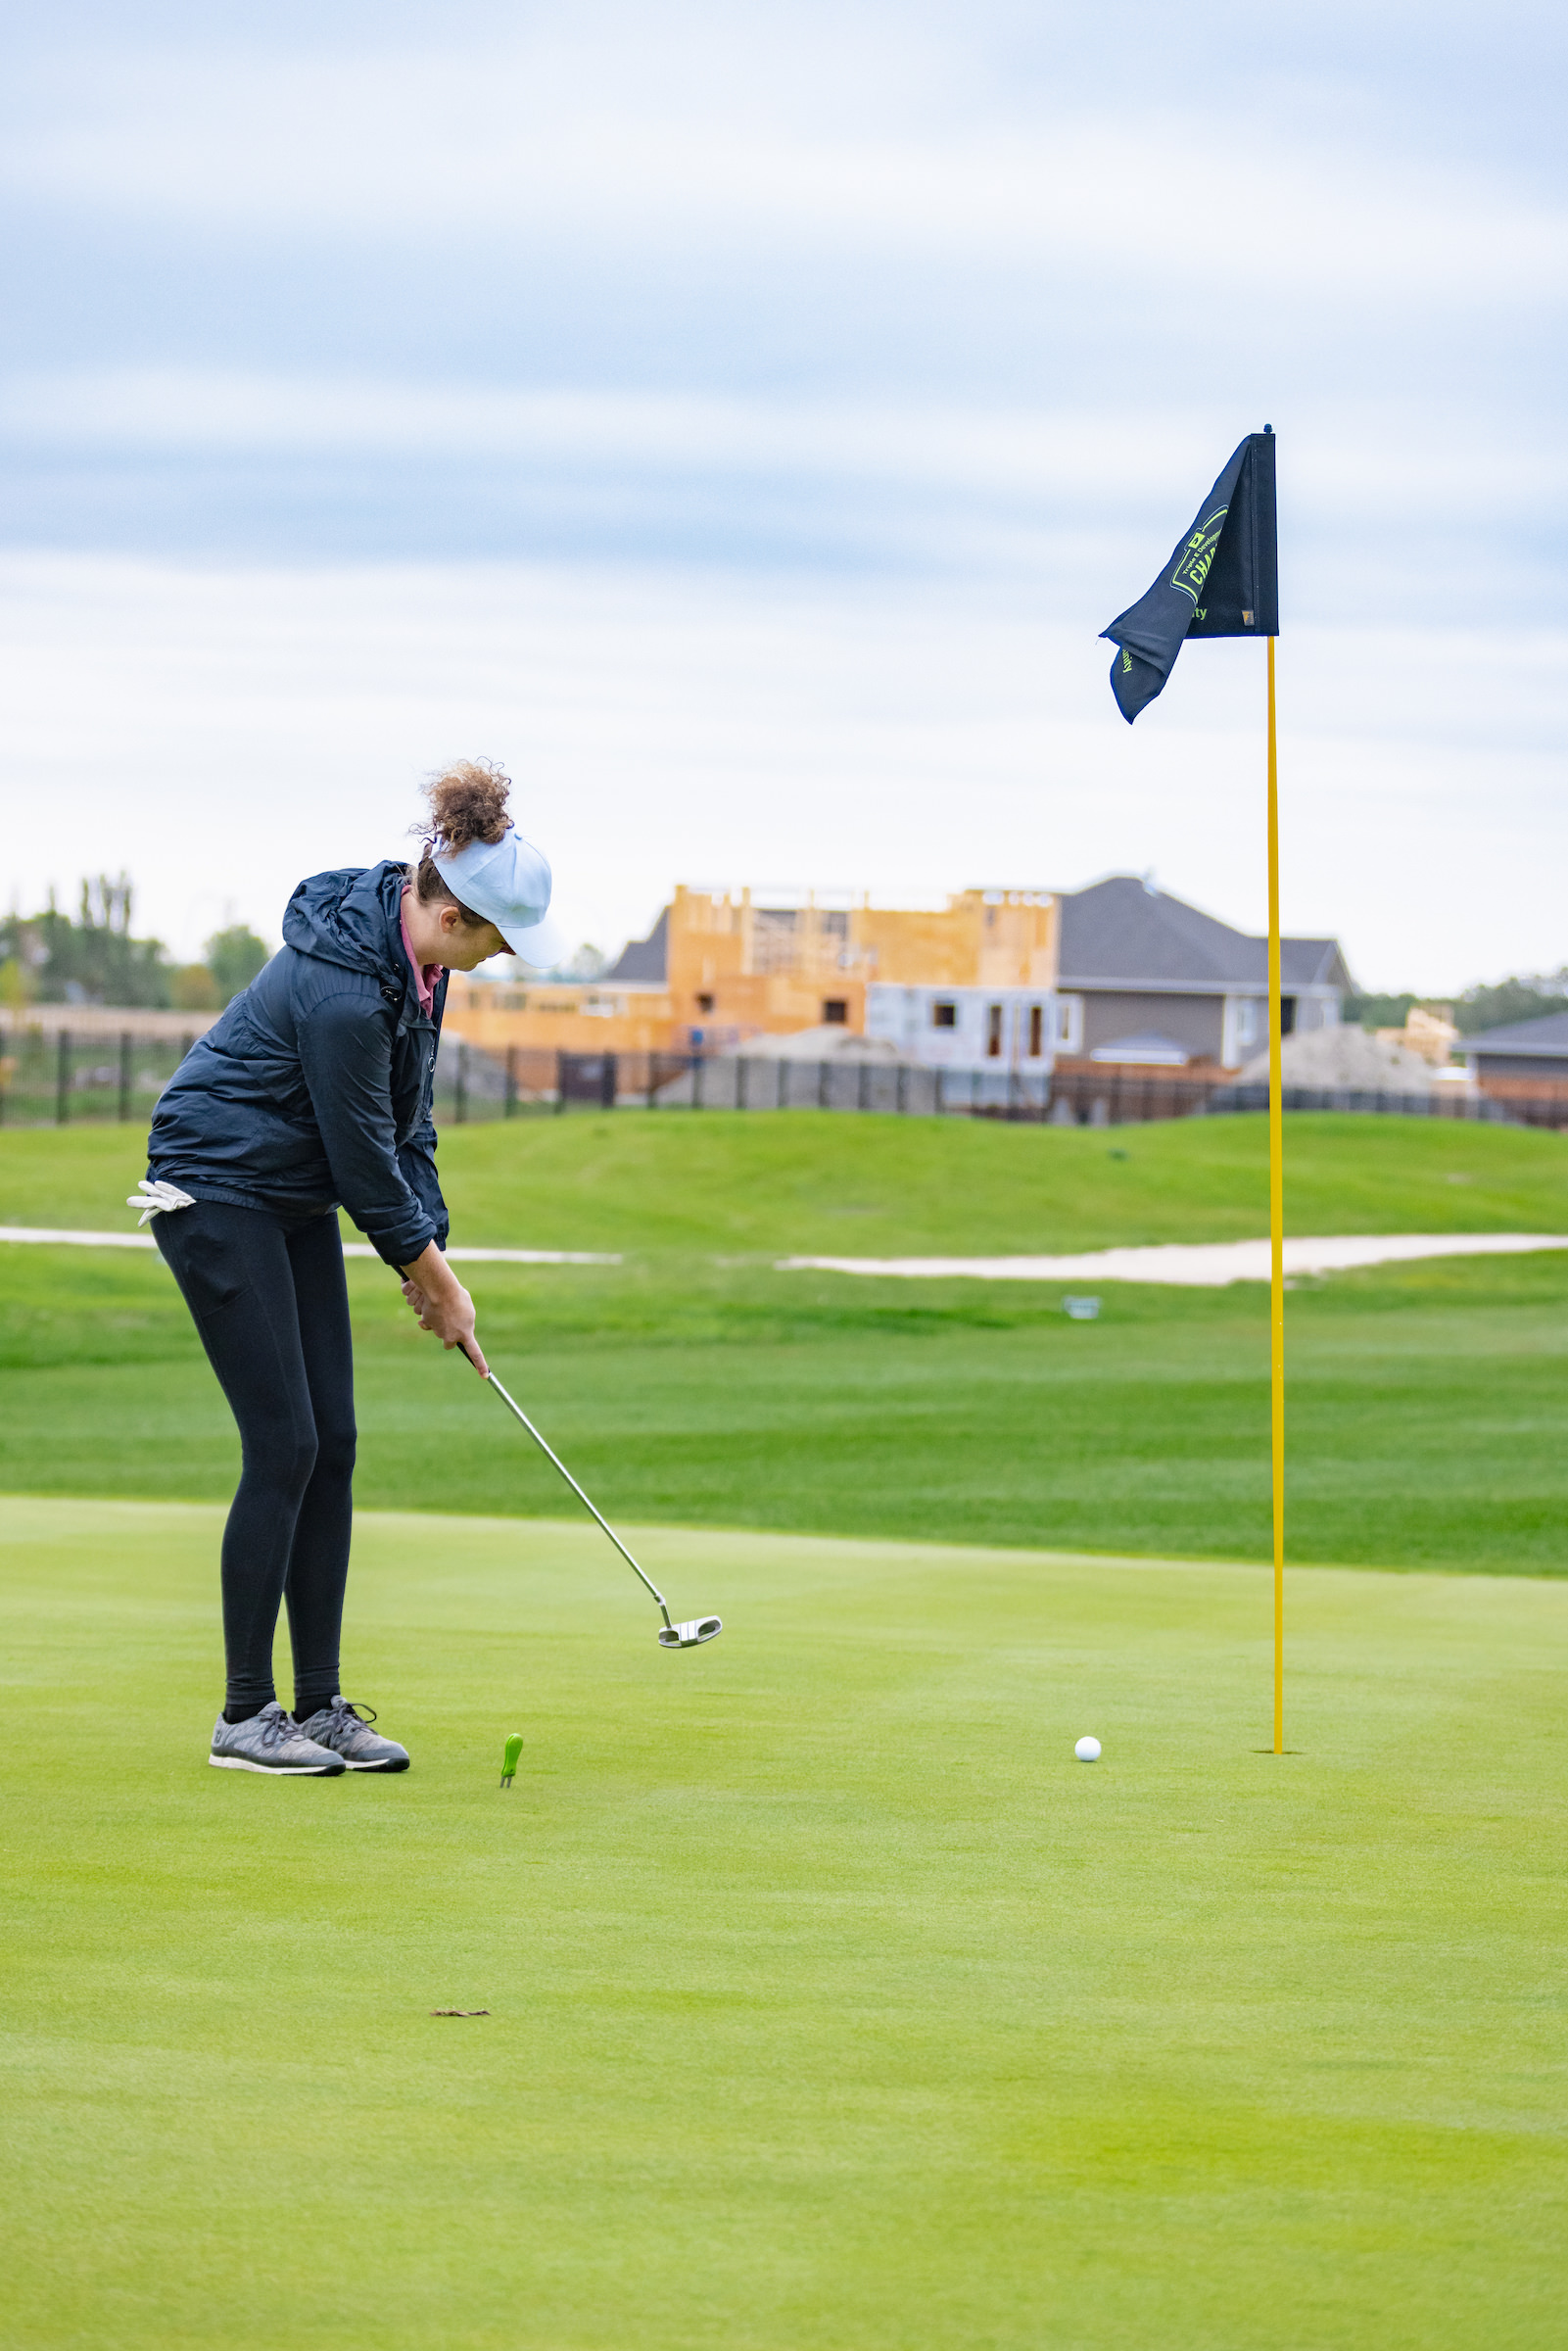 woman putts